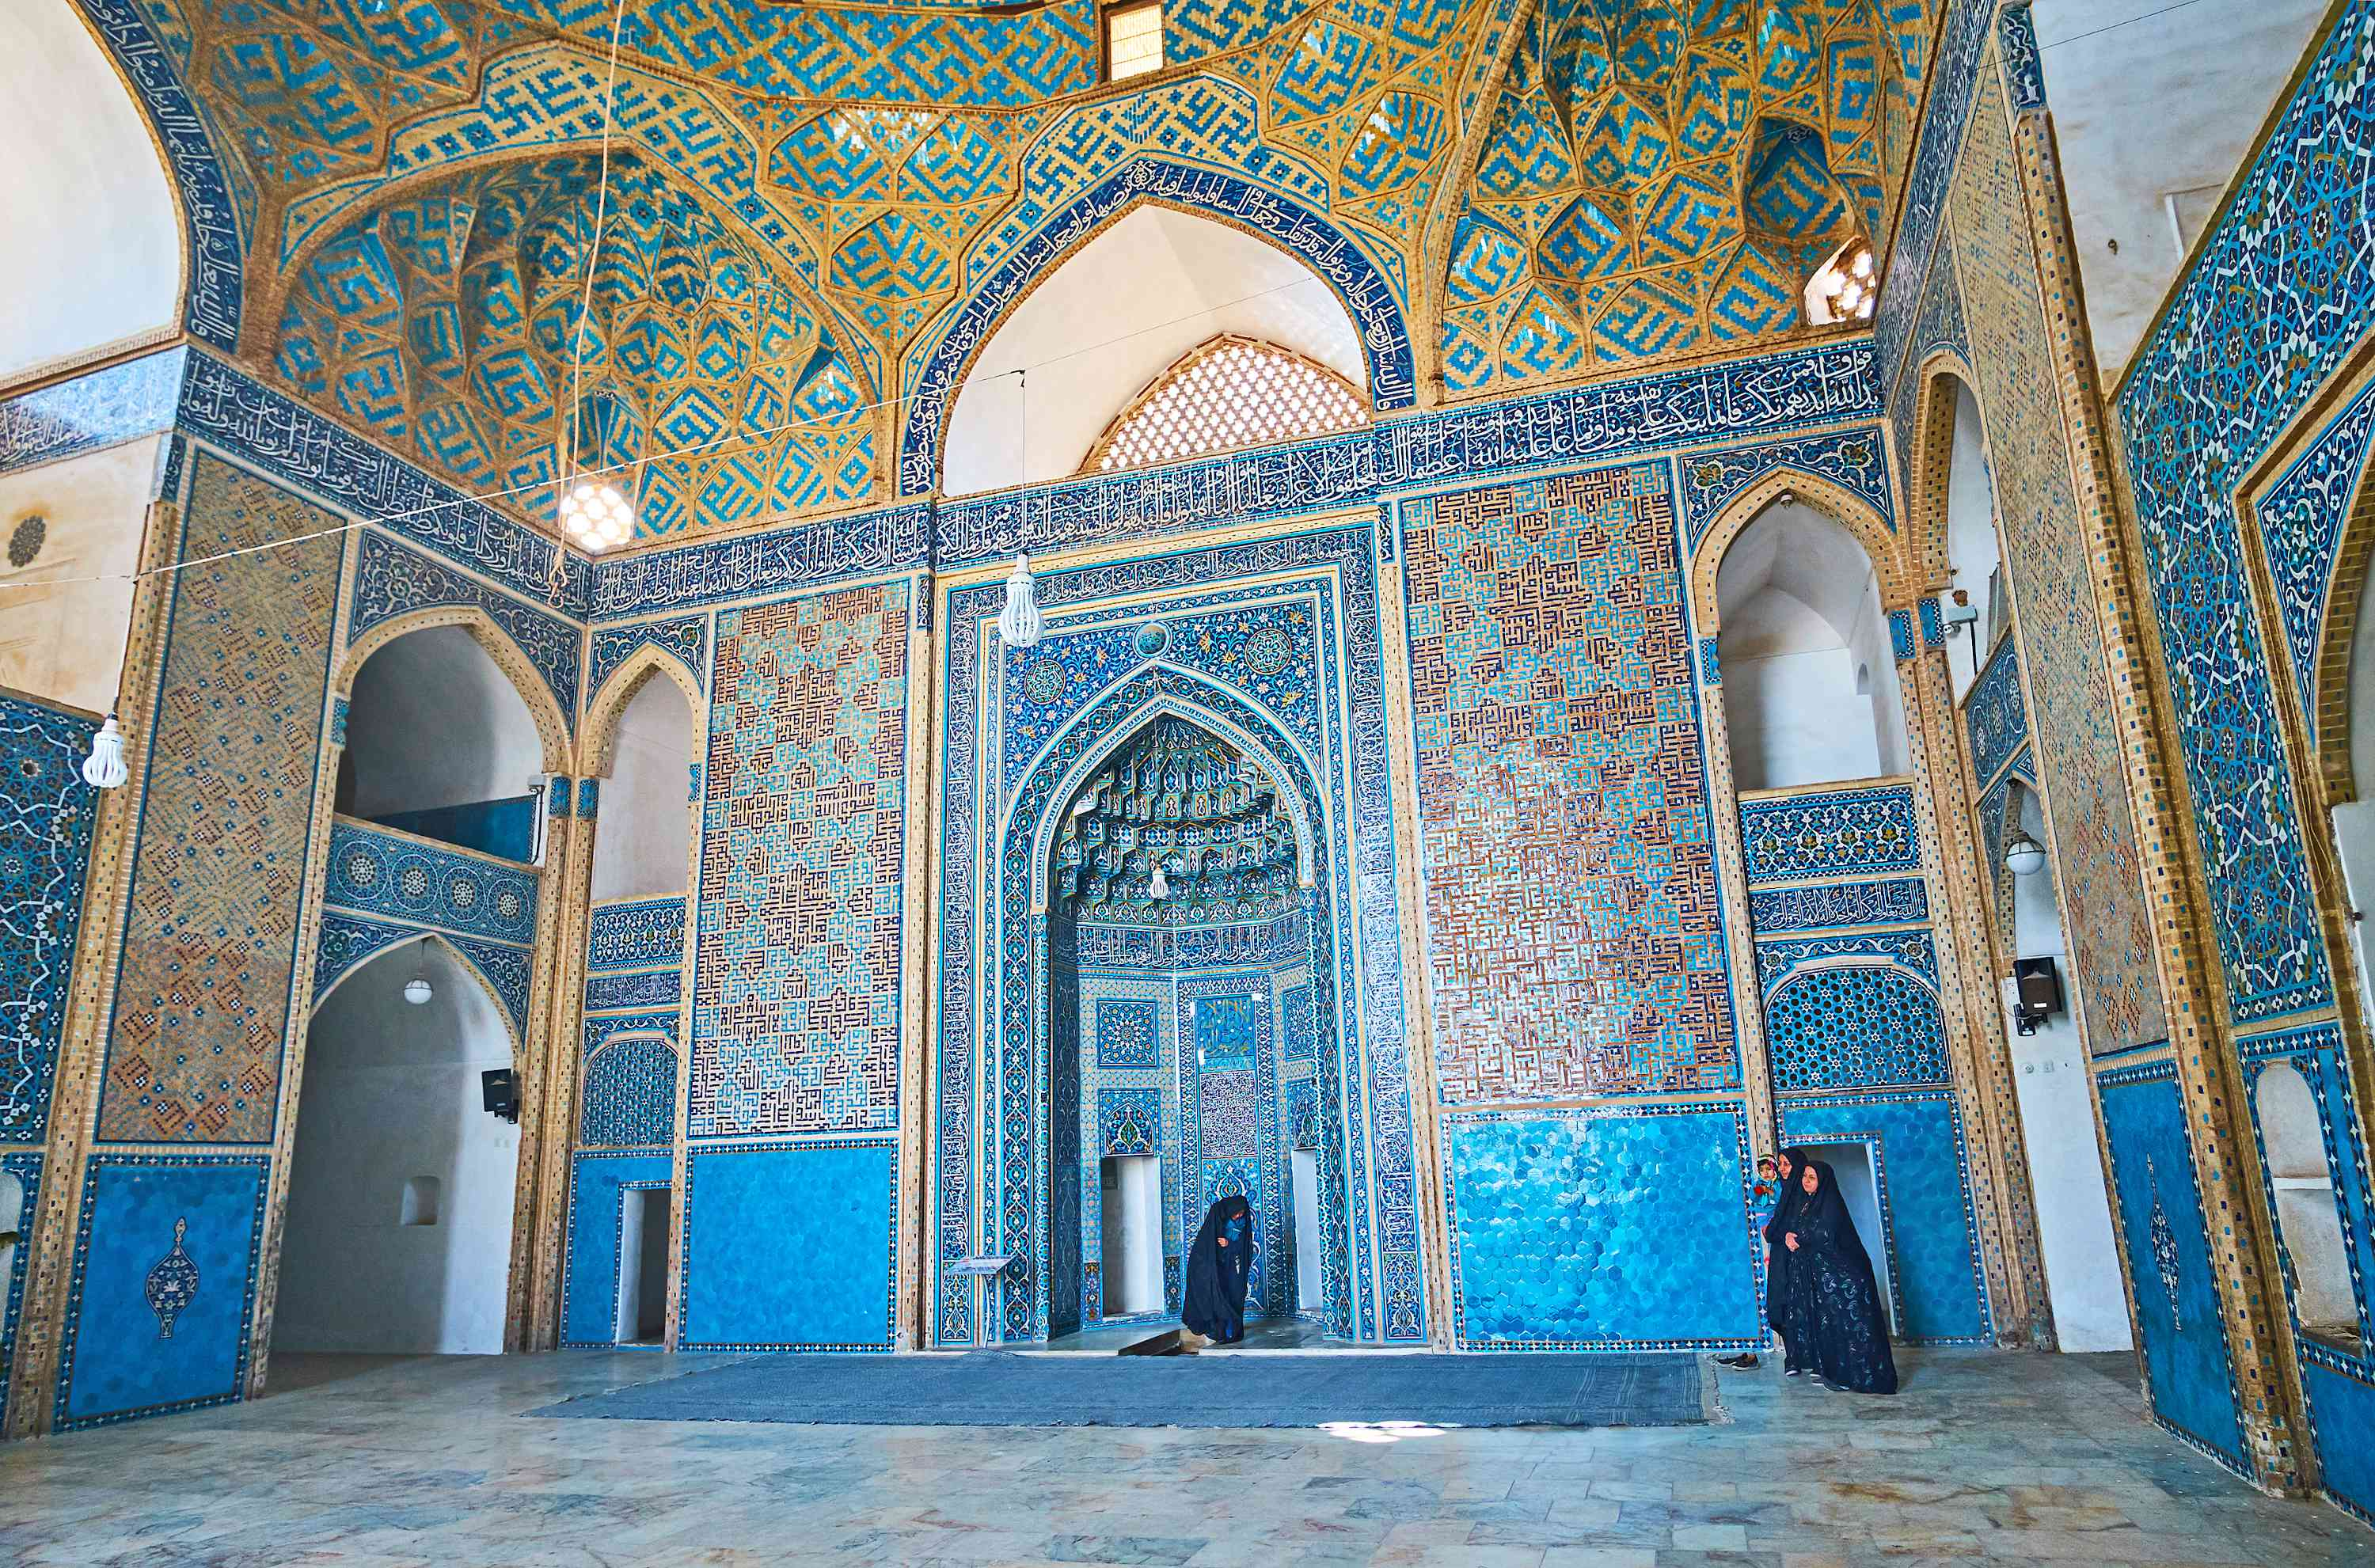 The dazzling Islamic patterns in the 14th century Jameh Mosque with a view on unique faience mihrab, Yazd, Iran.